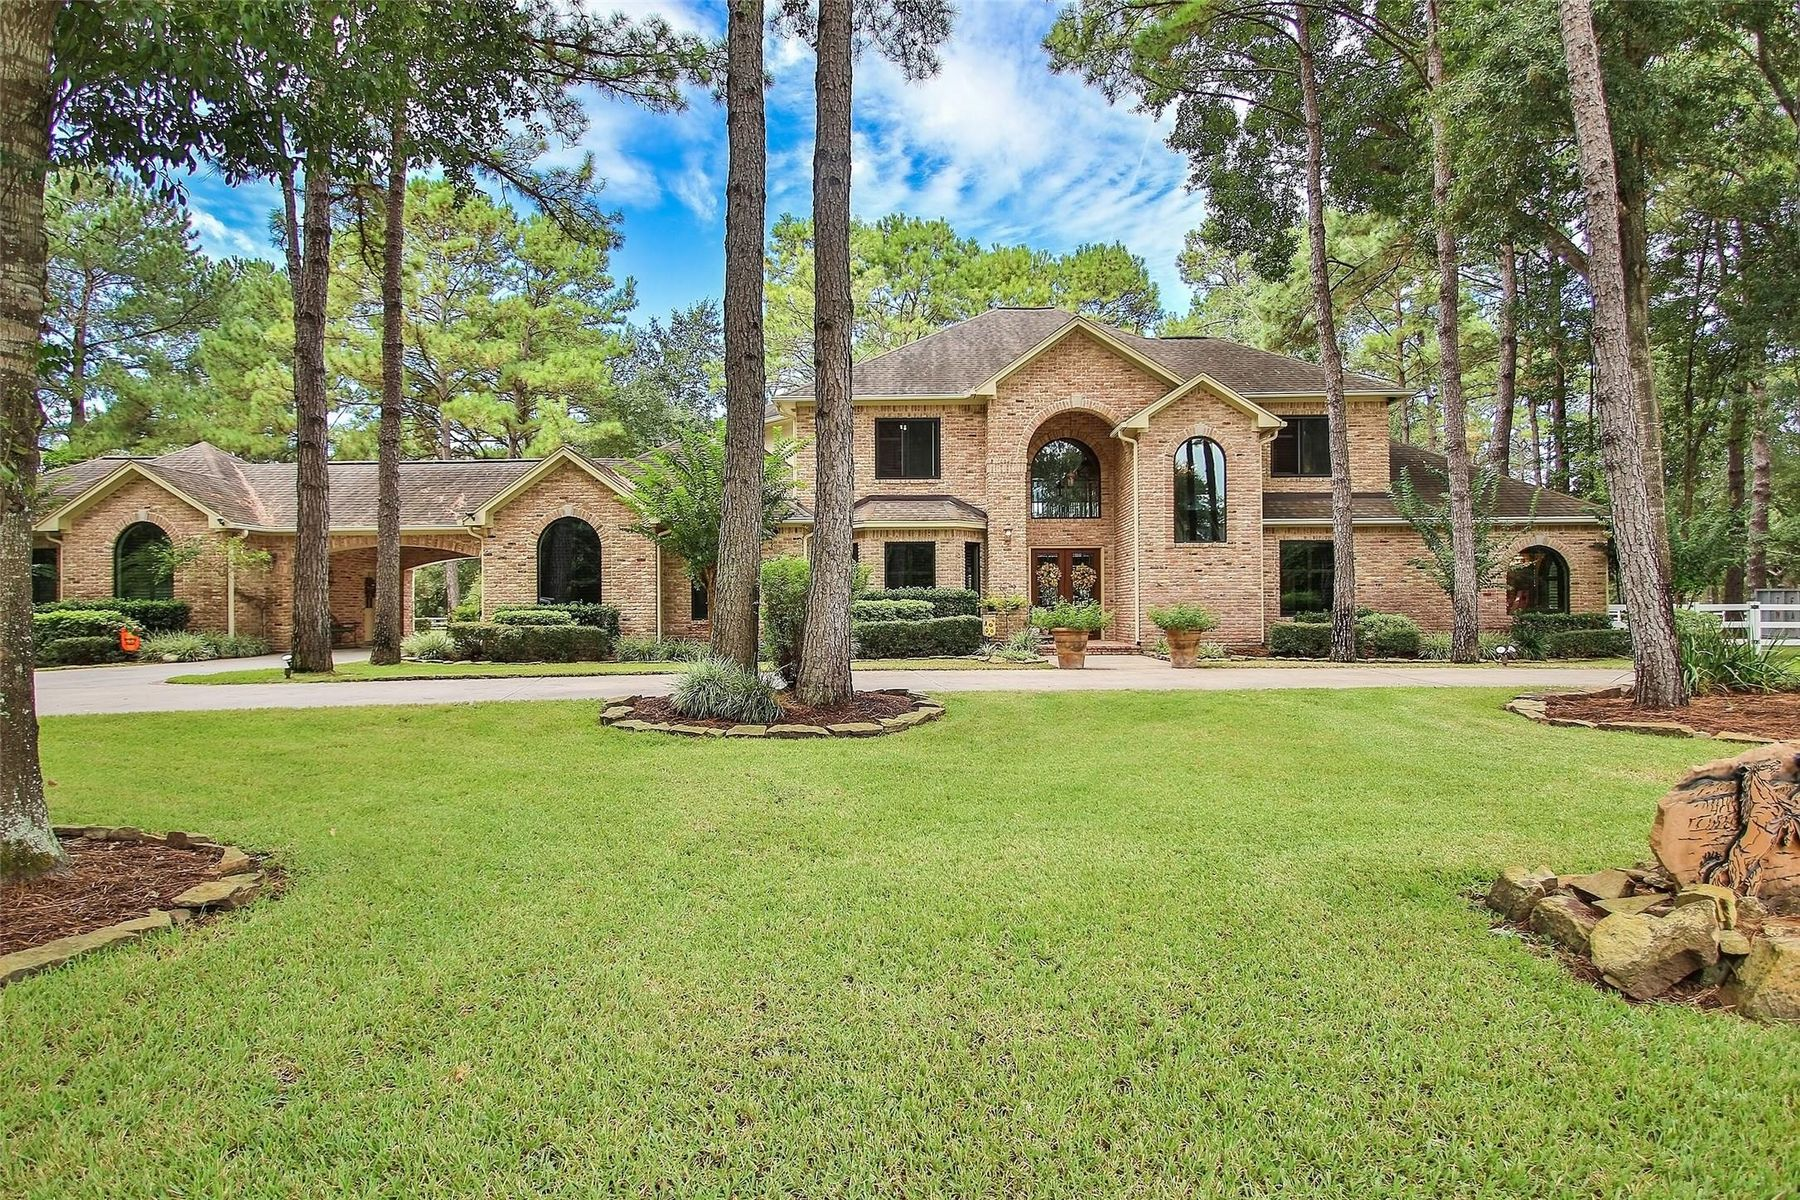 Single Family Homes for Sale at 17611 Bending Cypress Road Cypress, Texas 77429 United States